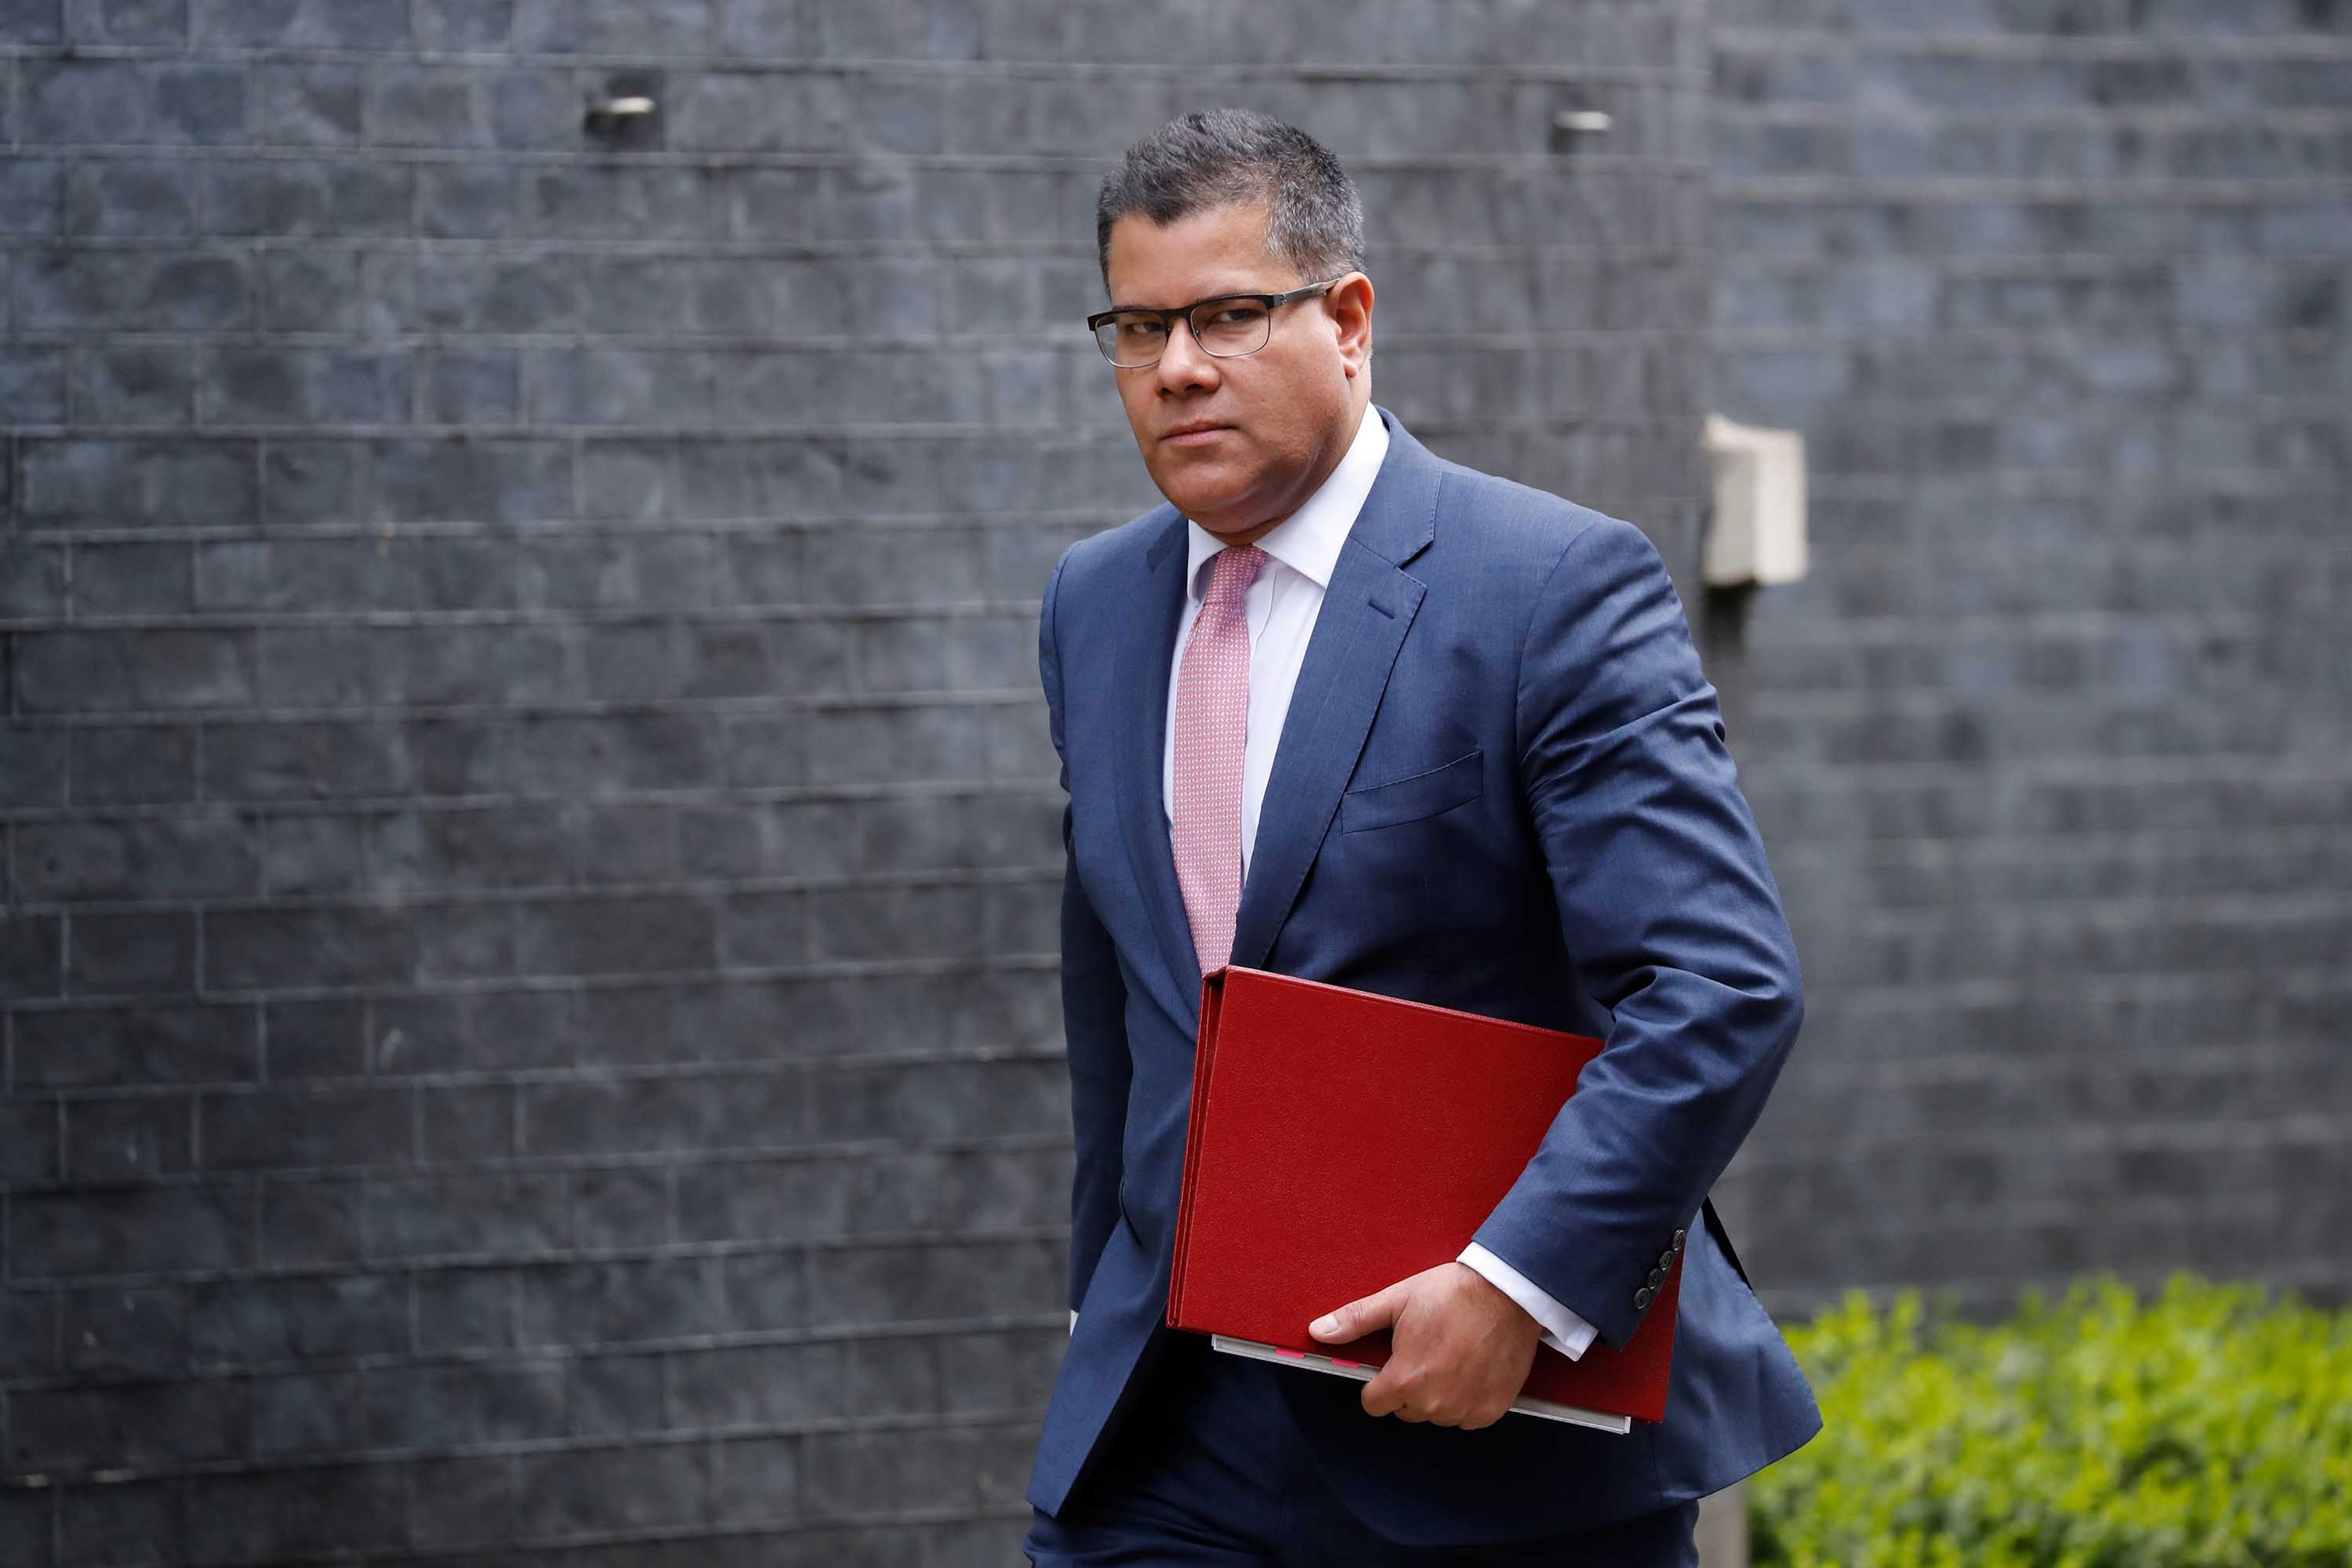 Britain's Business Minister Alok Sharma arrives at 10 Downing Street in London on March 17, ahead of a Cabinet meeting.